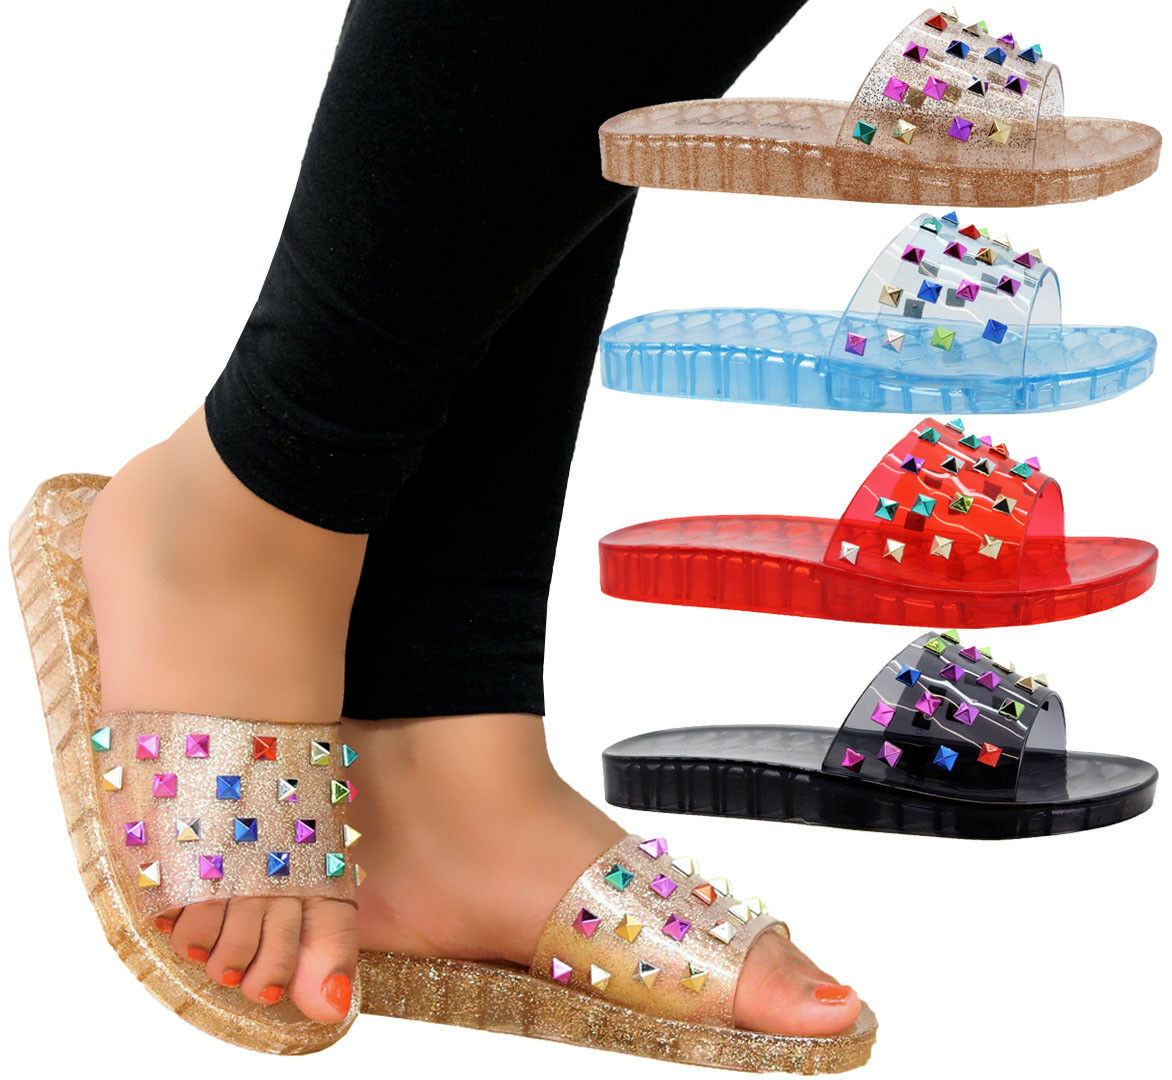 Ladies Womens Slip Sparkly Studded Summer Beach Slip Womens On Sliders Mules Sandals Shoes ed2d73